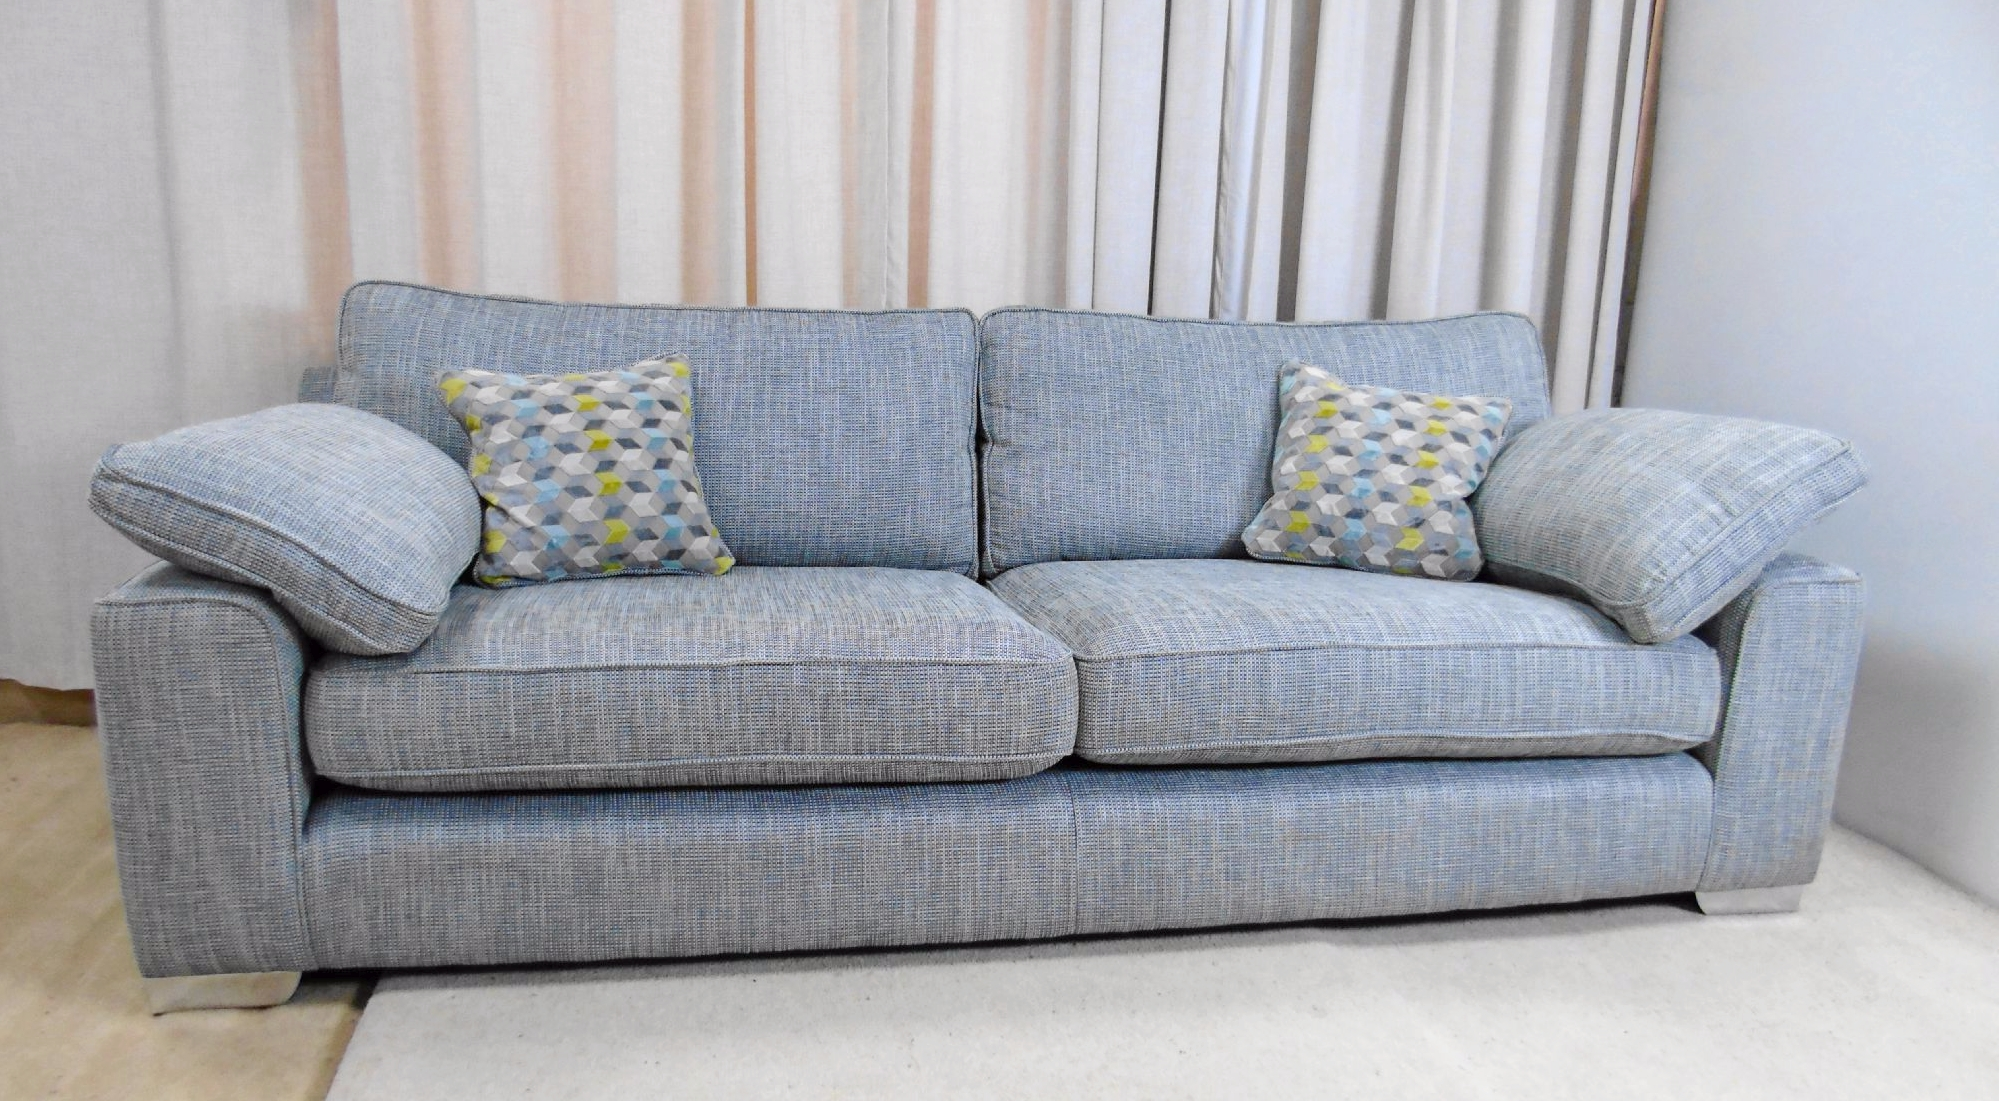 Whitemeadow Loft Large 4 Seater Sofa Within Best And Newest Large 4 Seater Sofas (View 12 of 15)